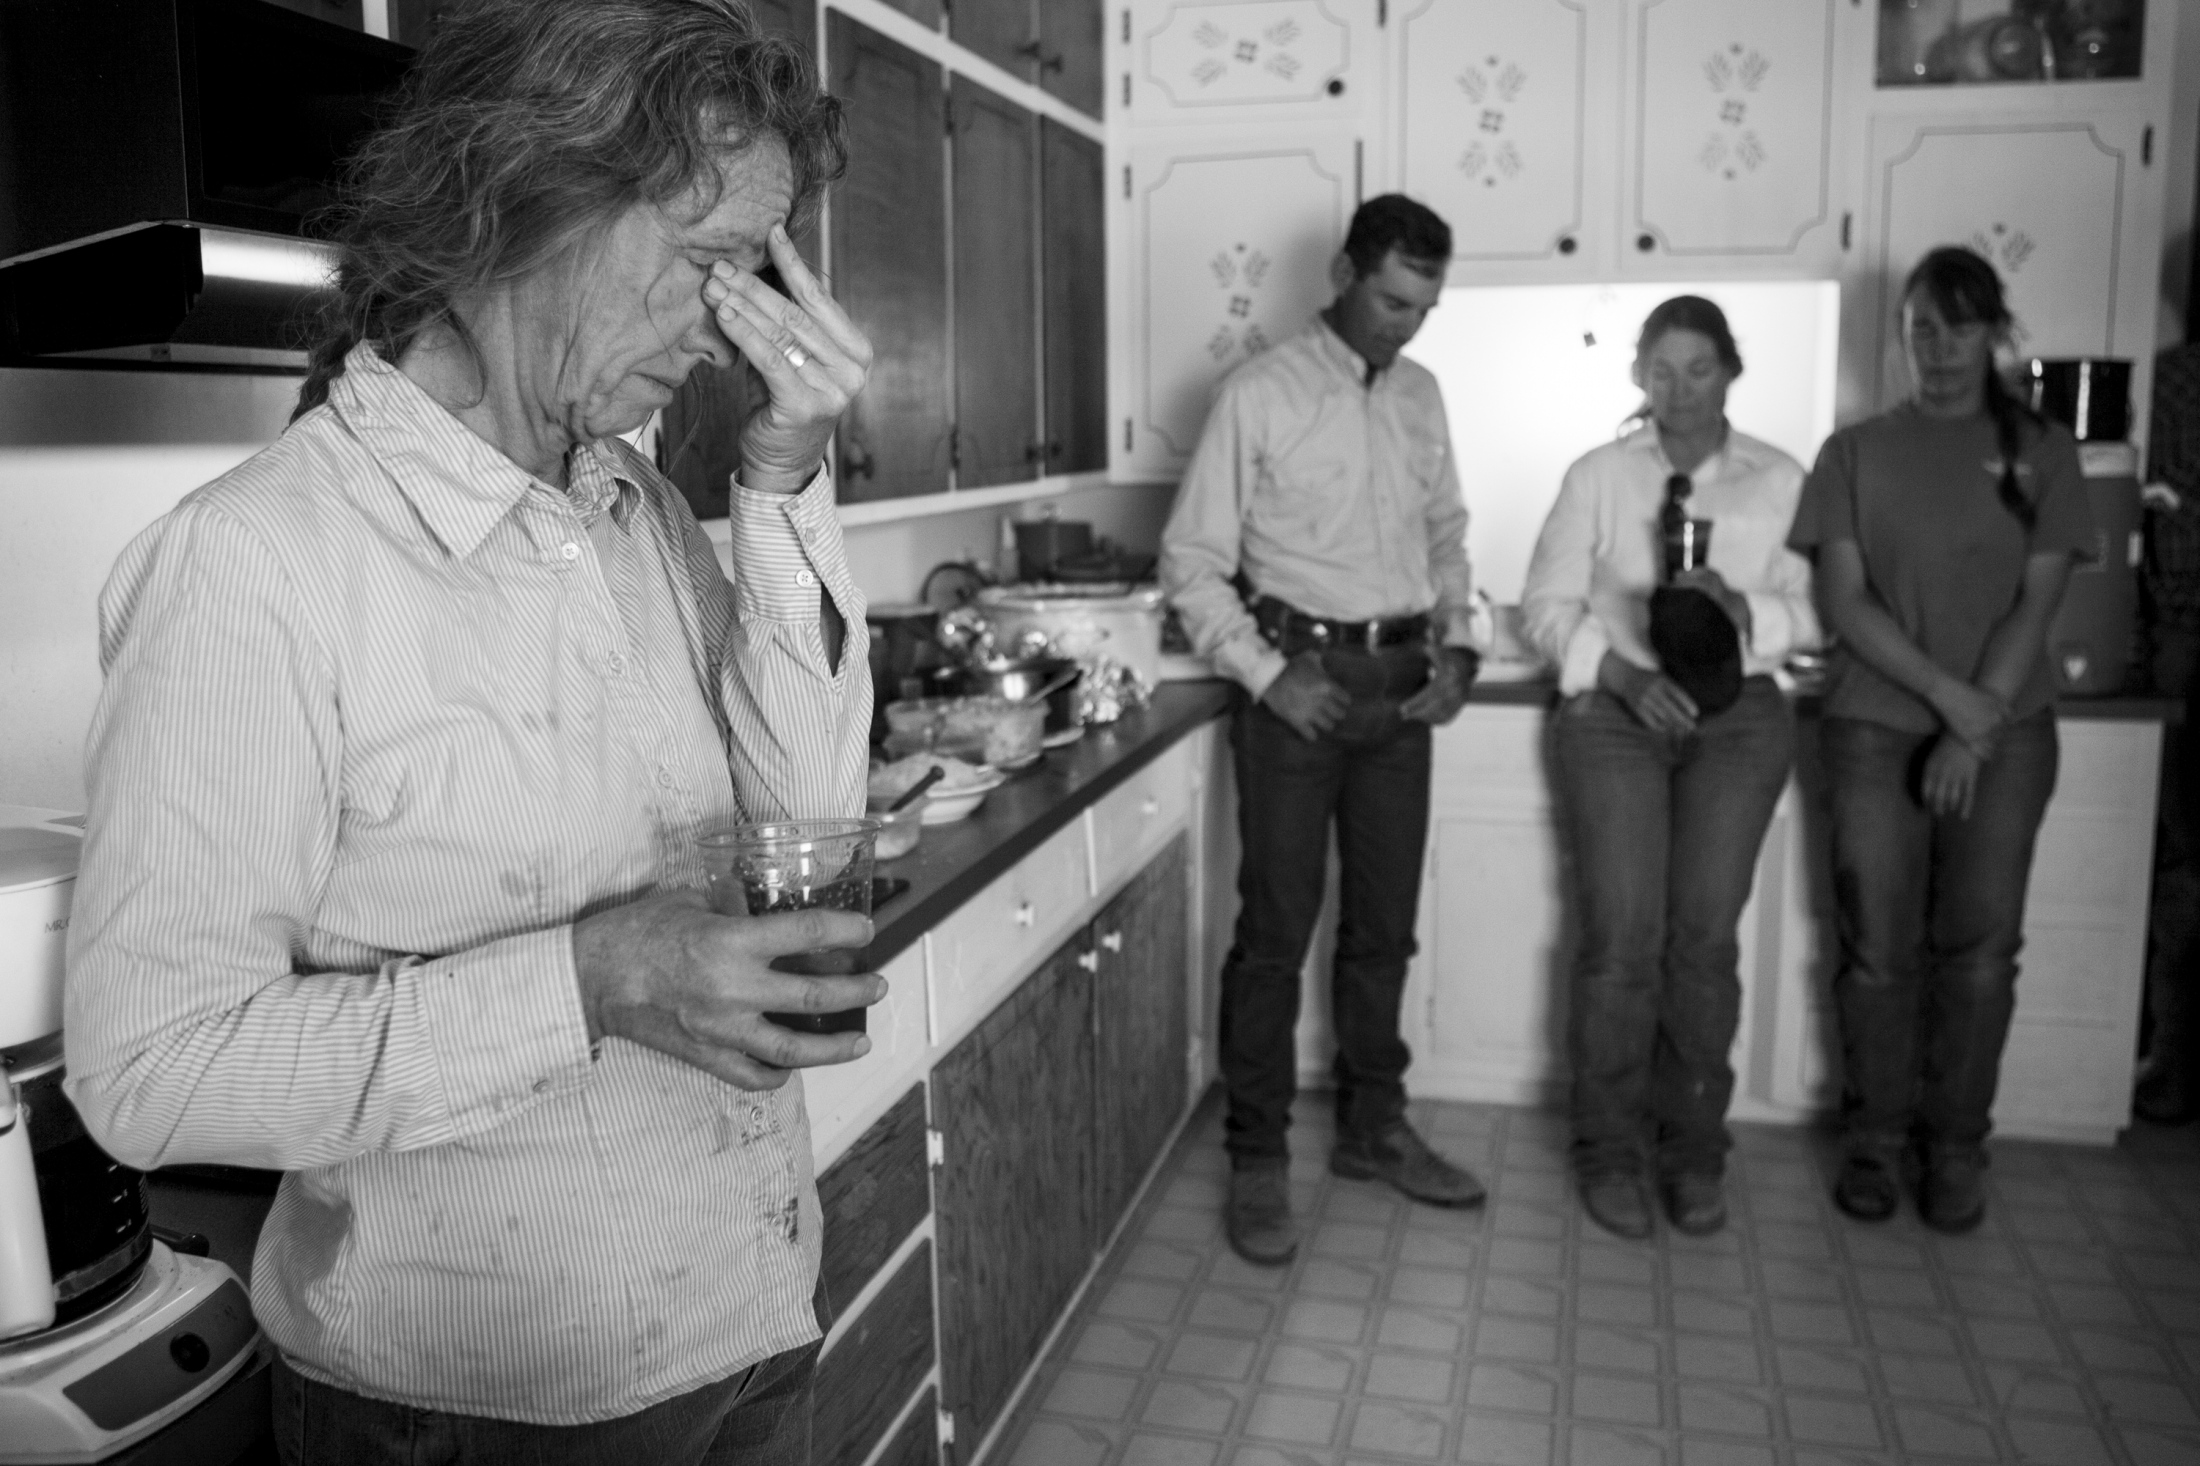 Jimmie Wells presses between her eyes in exhaustion as Ethan Fuchs, Dianne Fuchs and her daughter, Rebecca Wells take a moment to pray before lunch in the ranch house.